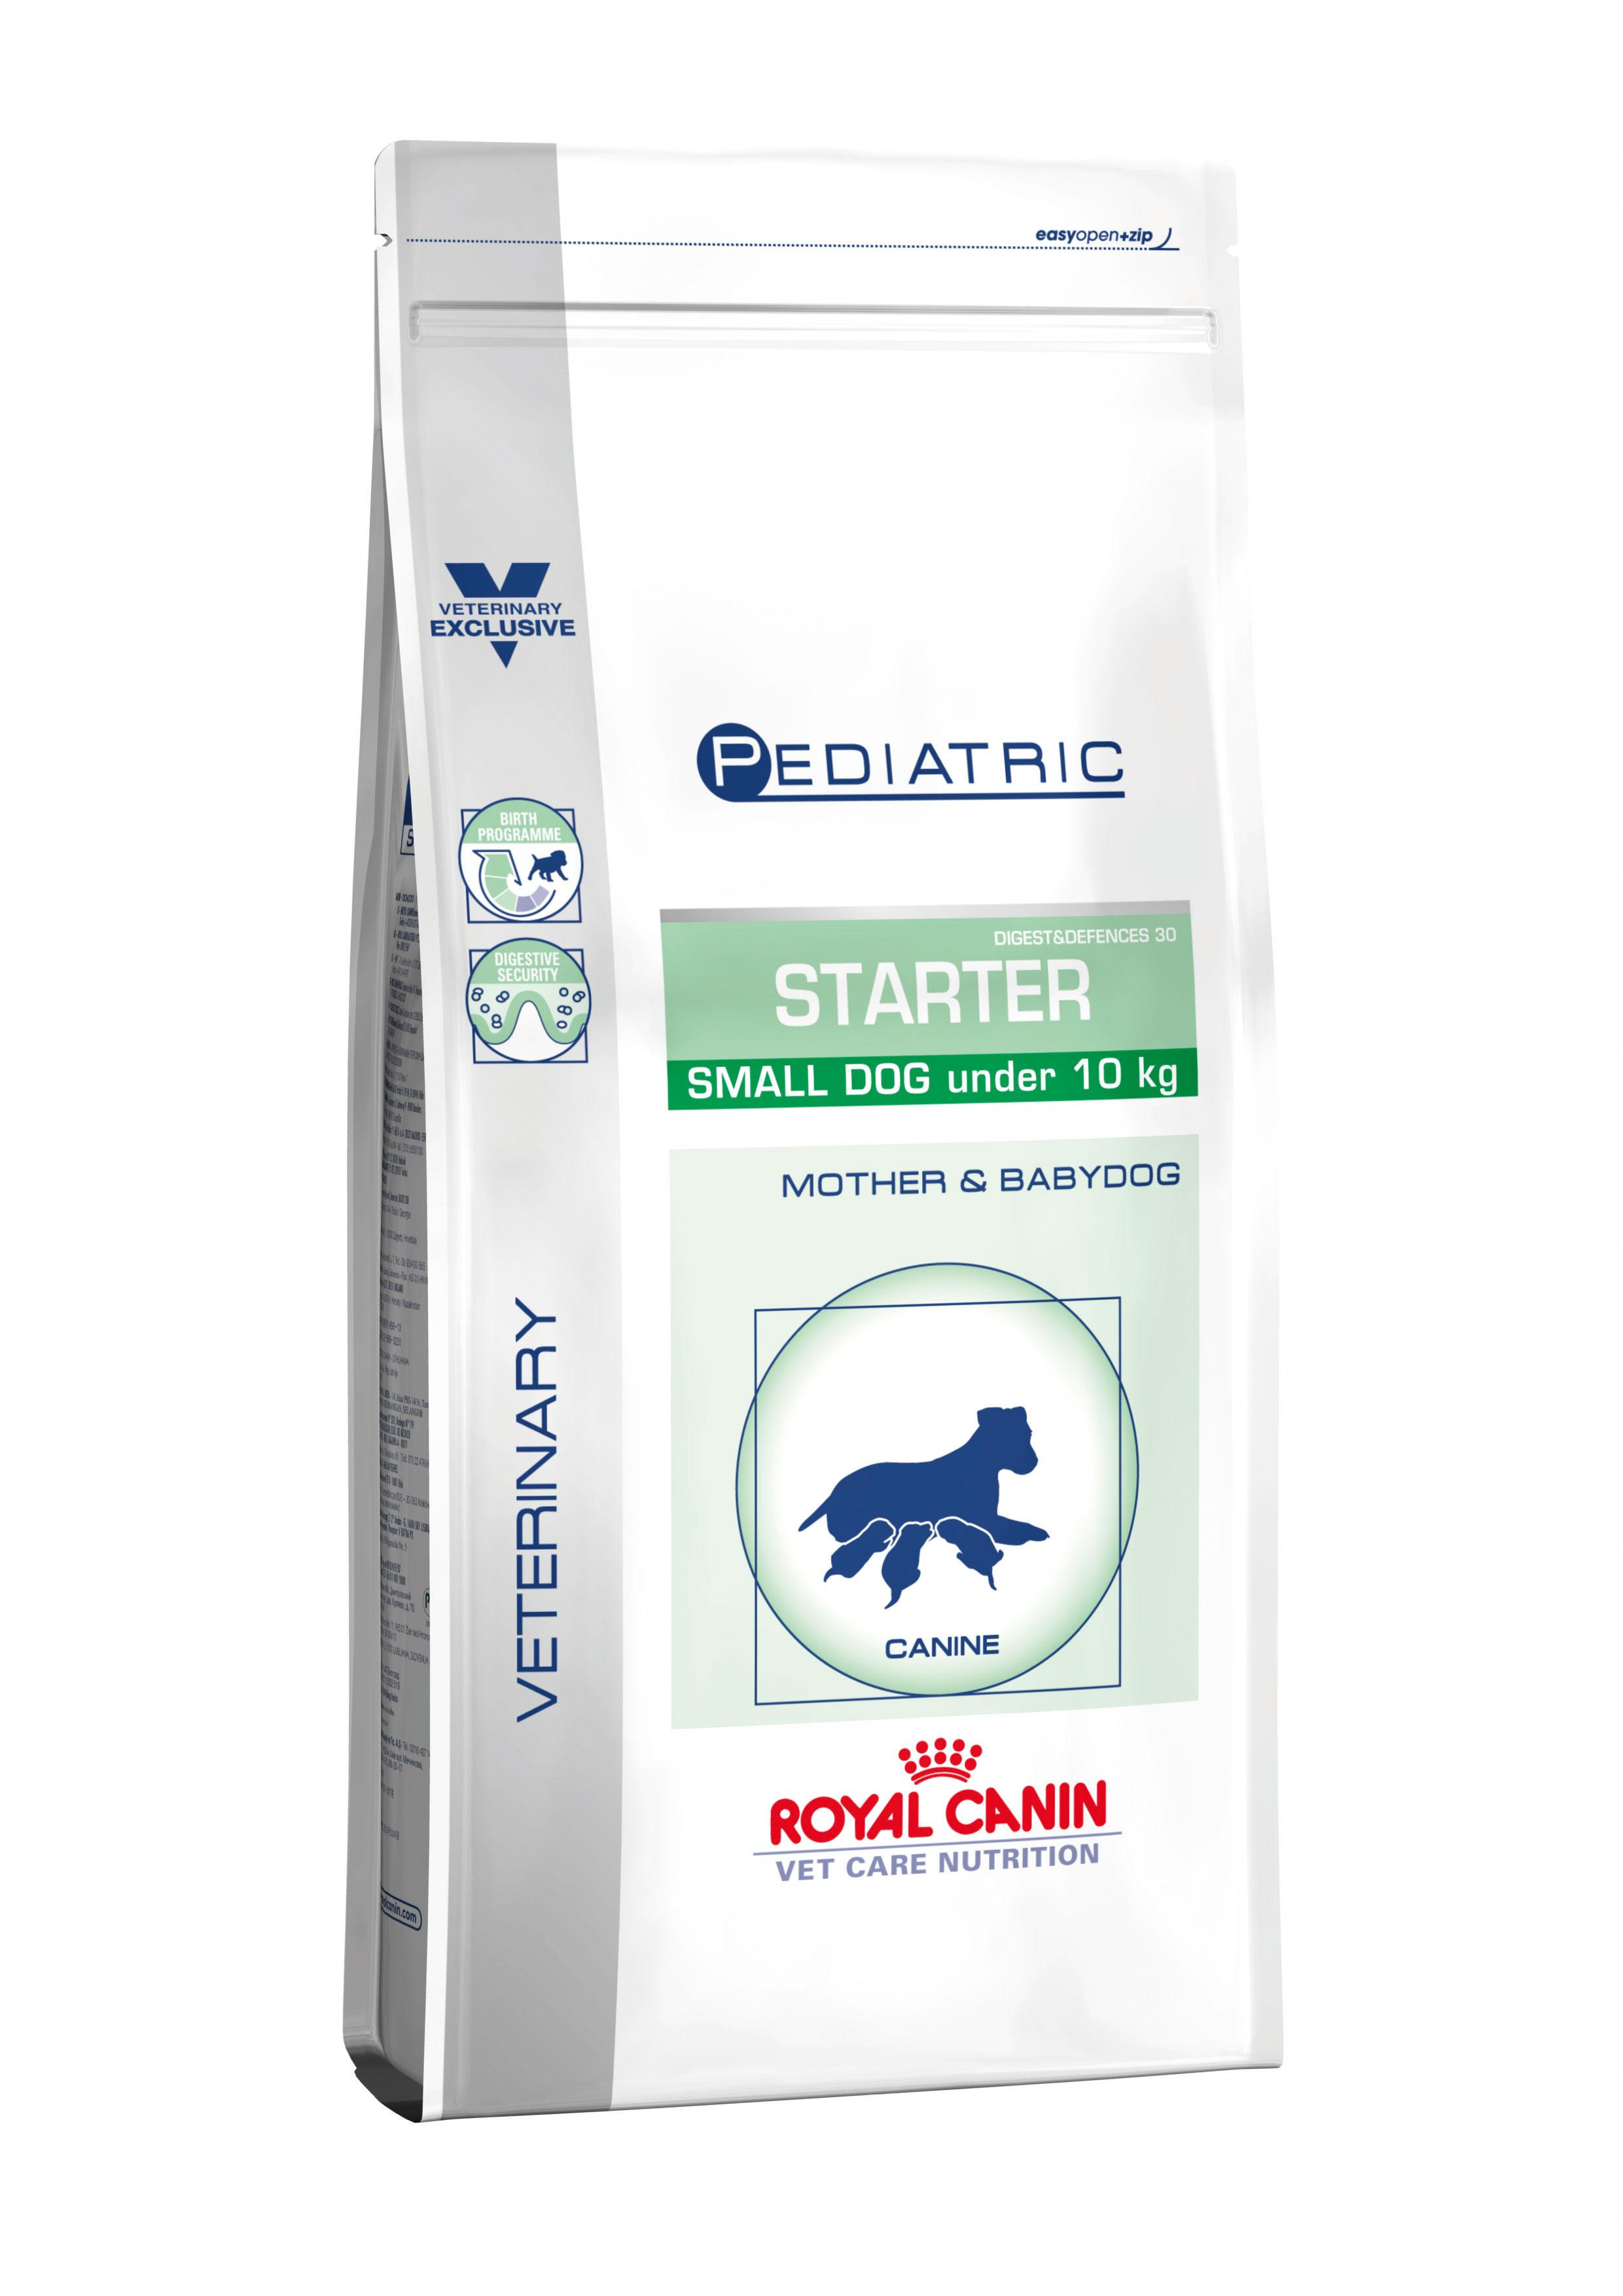 Royal Canin pediatric dog food